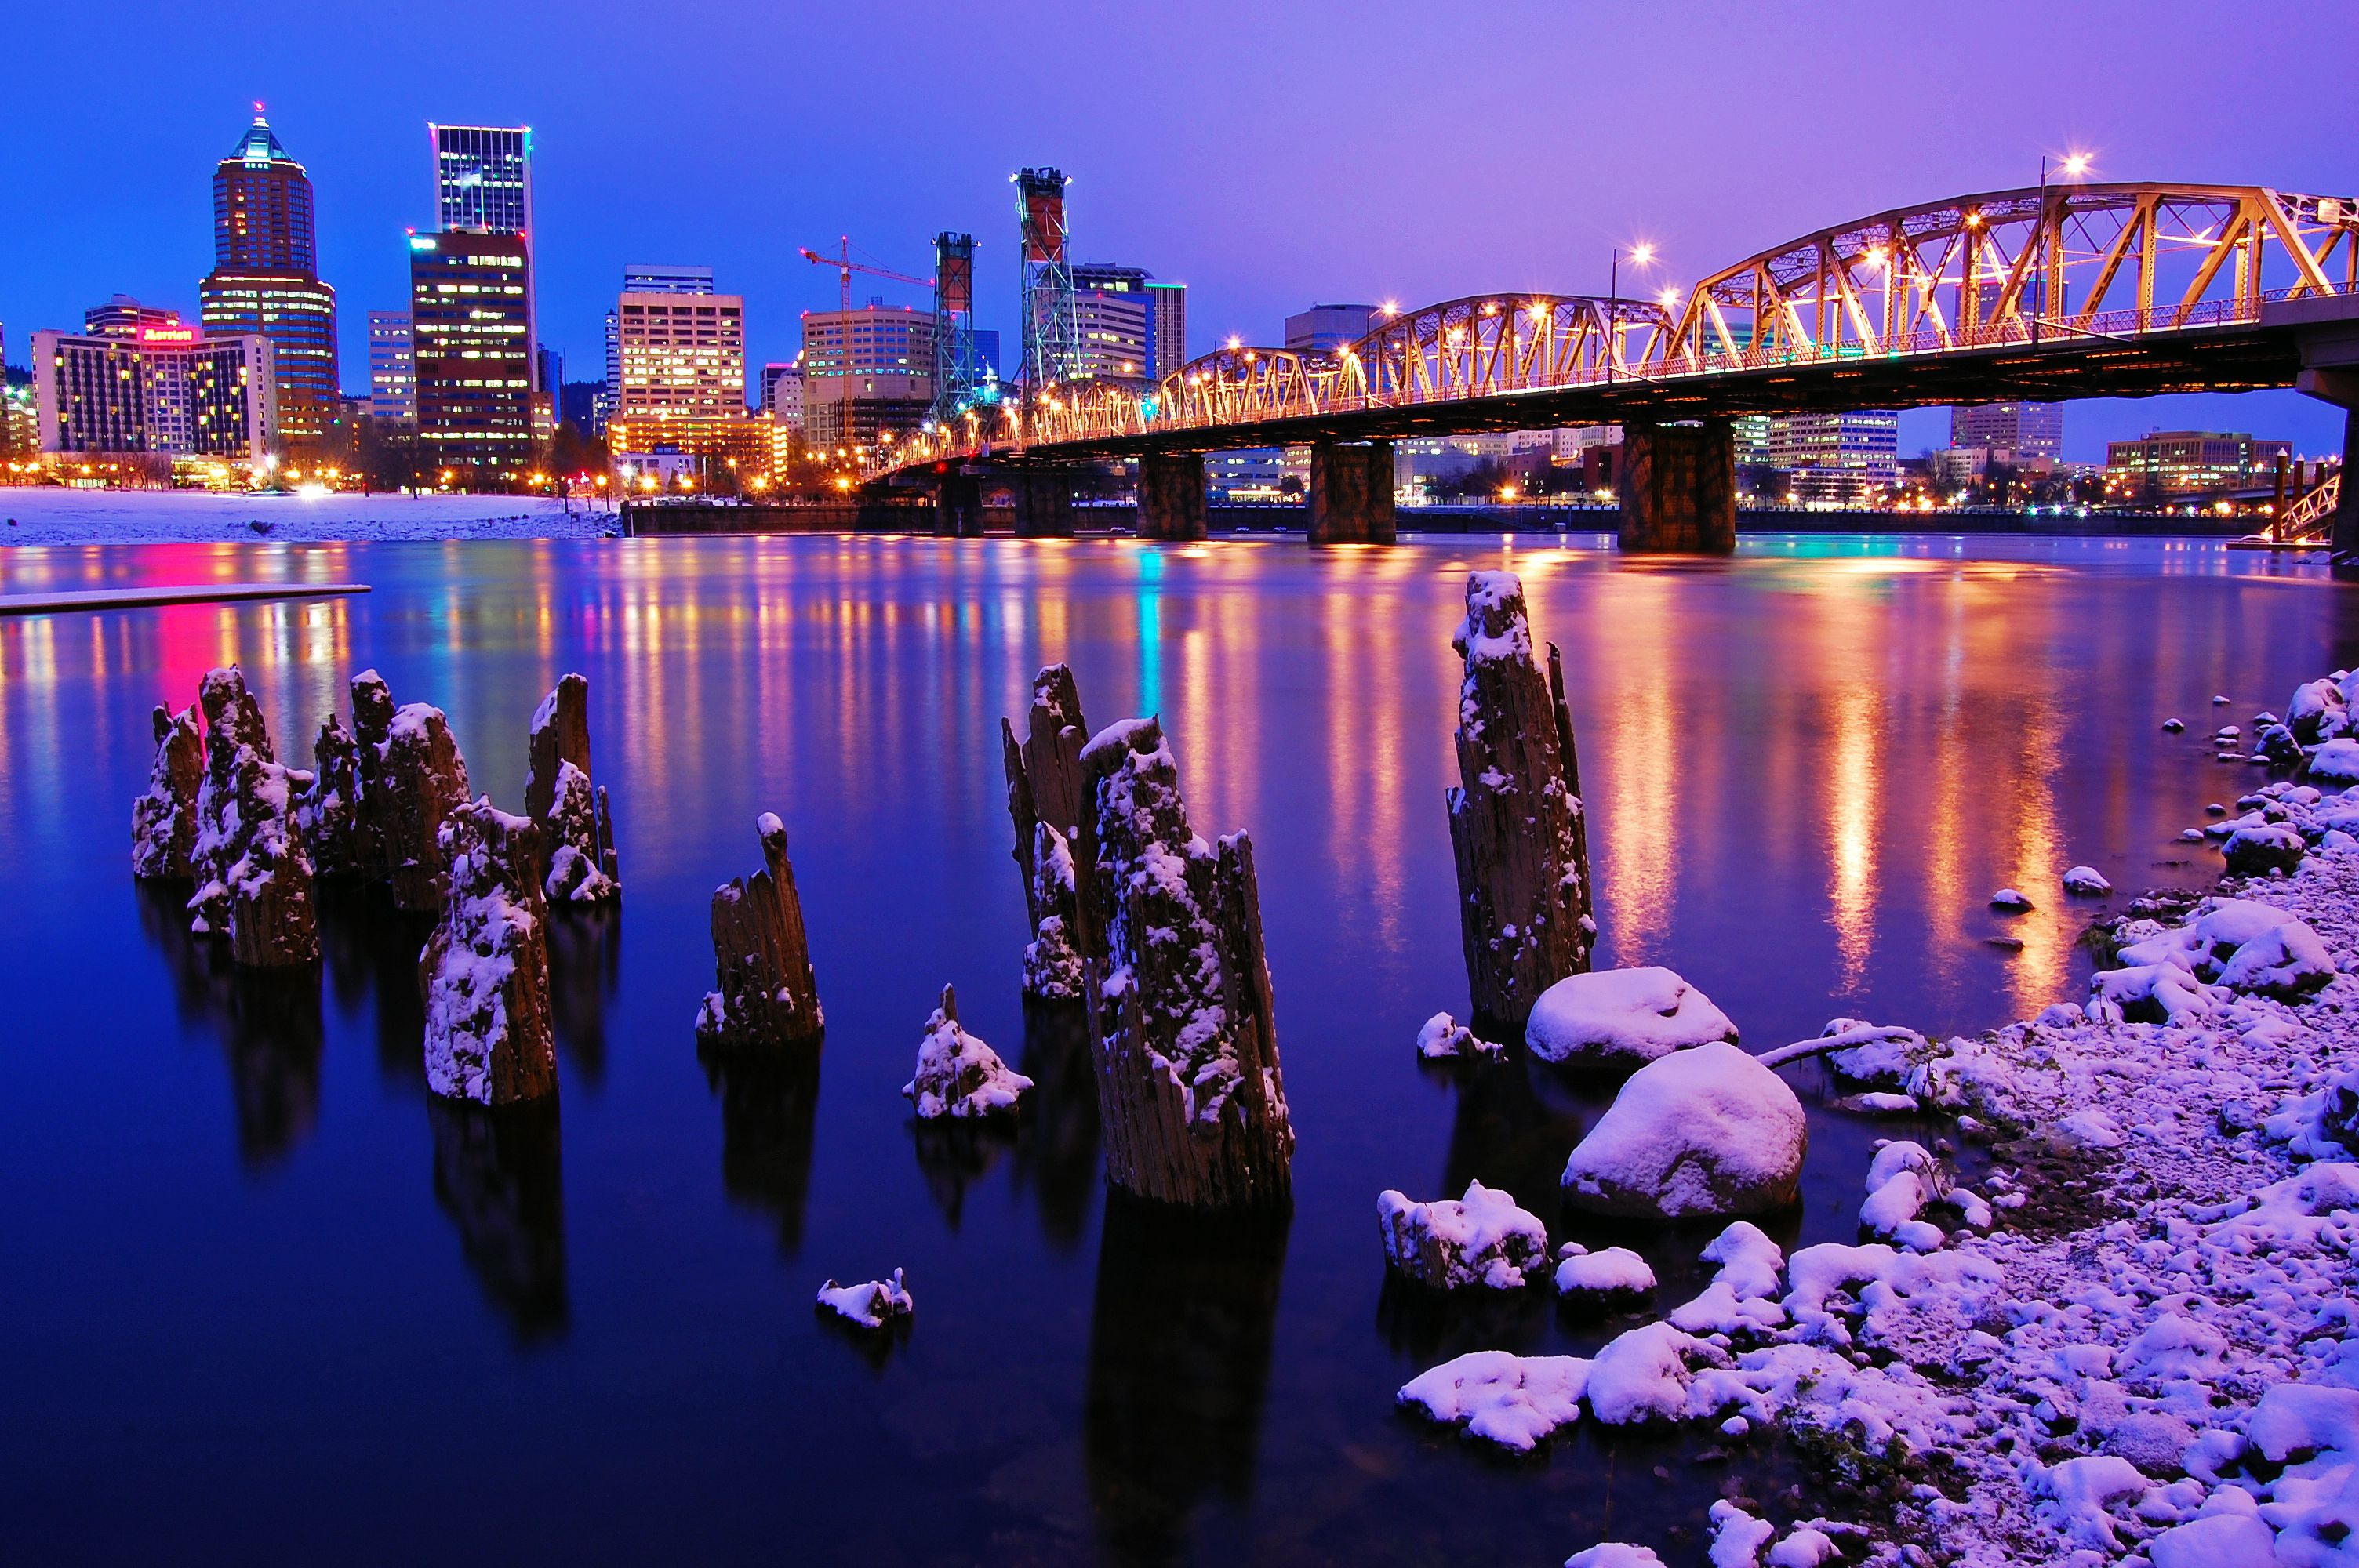 Overlooking a river in downtown Portland, Oregon.